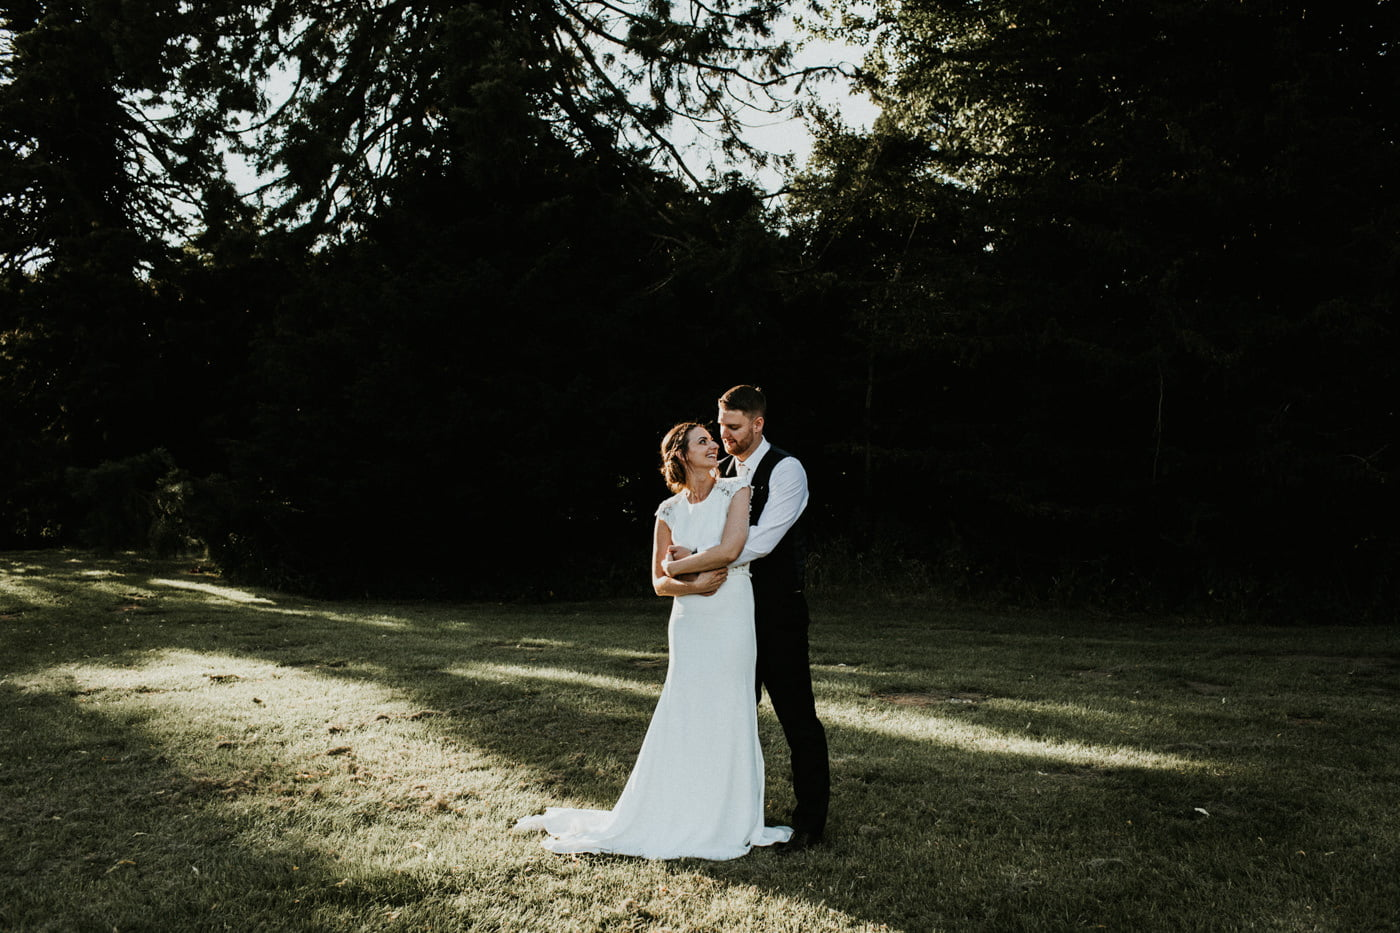 Katy and Adam, Elmhay Park, Somerset 25